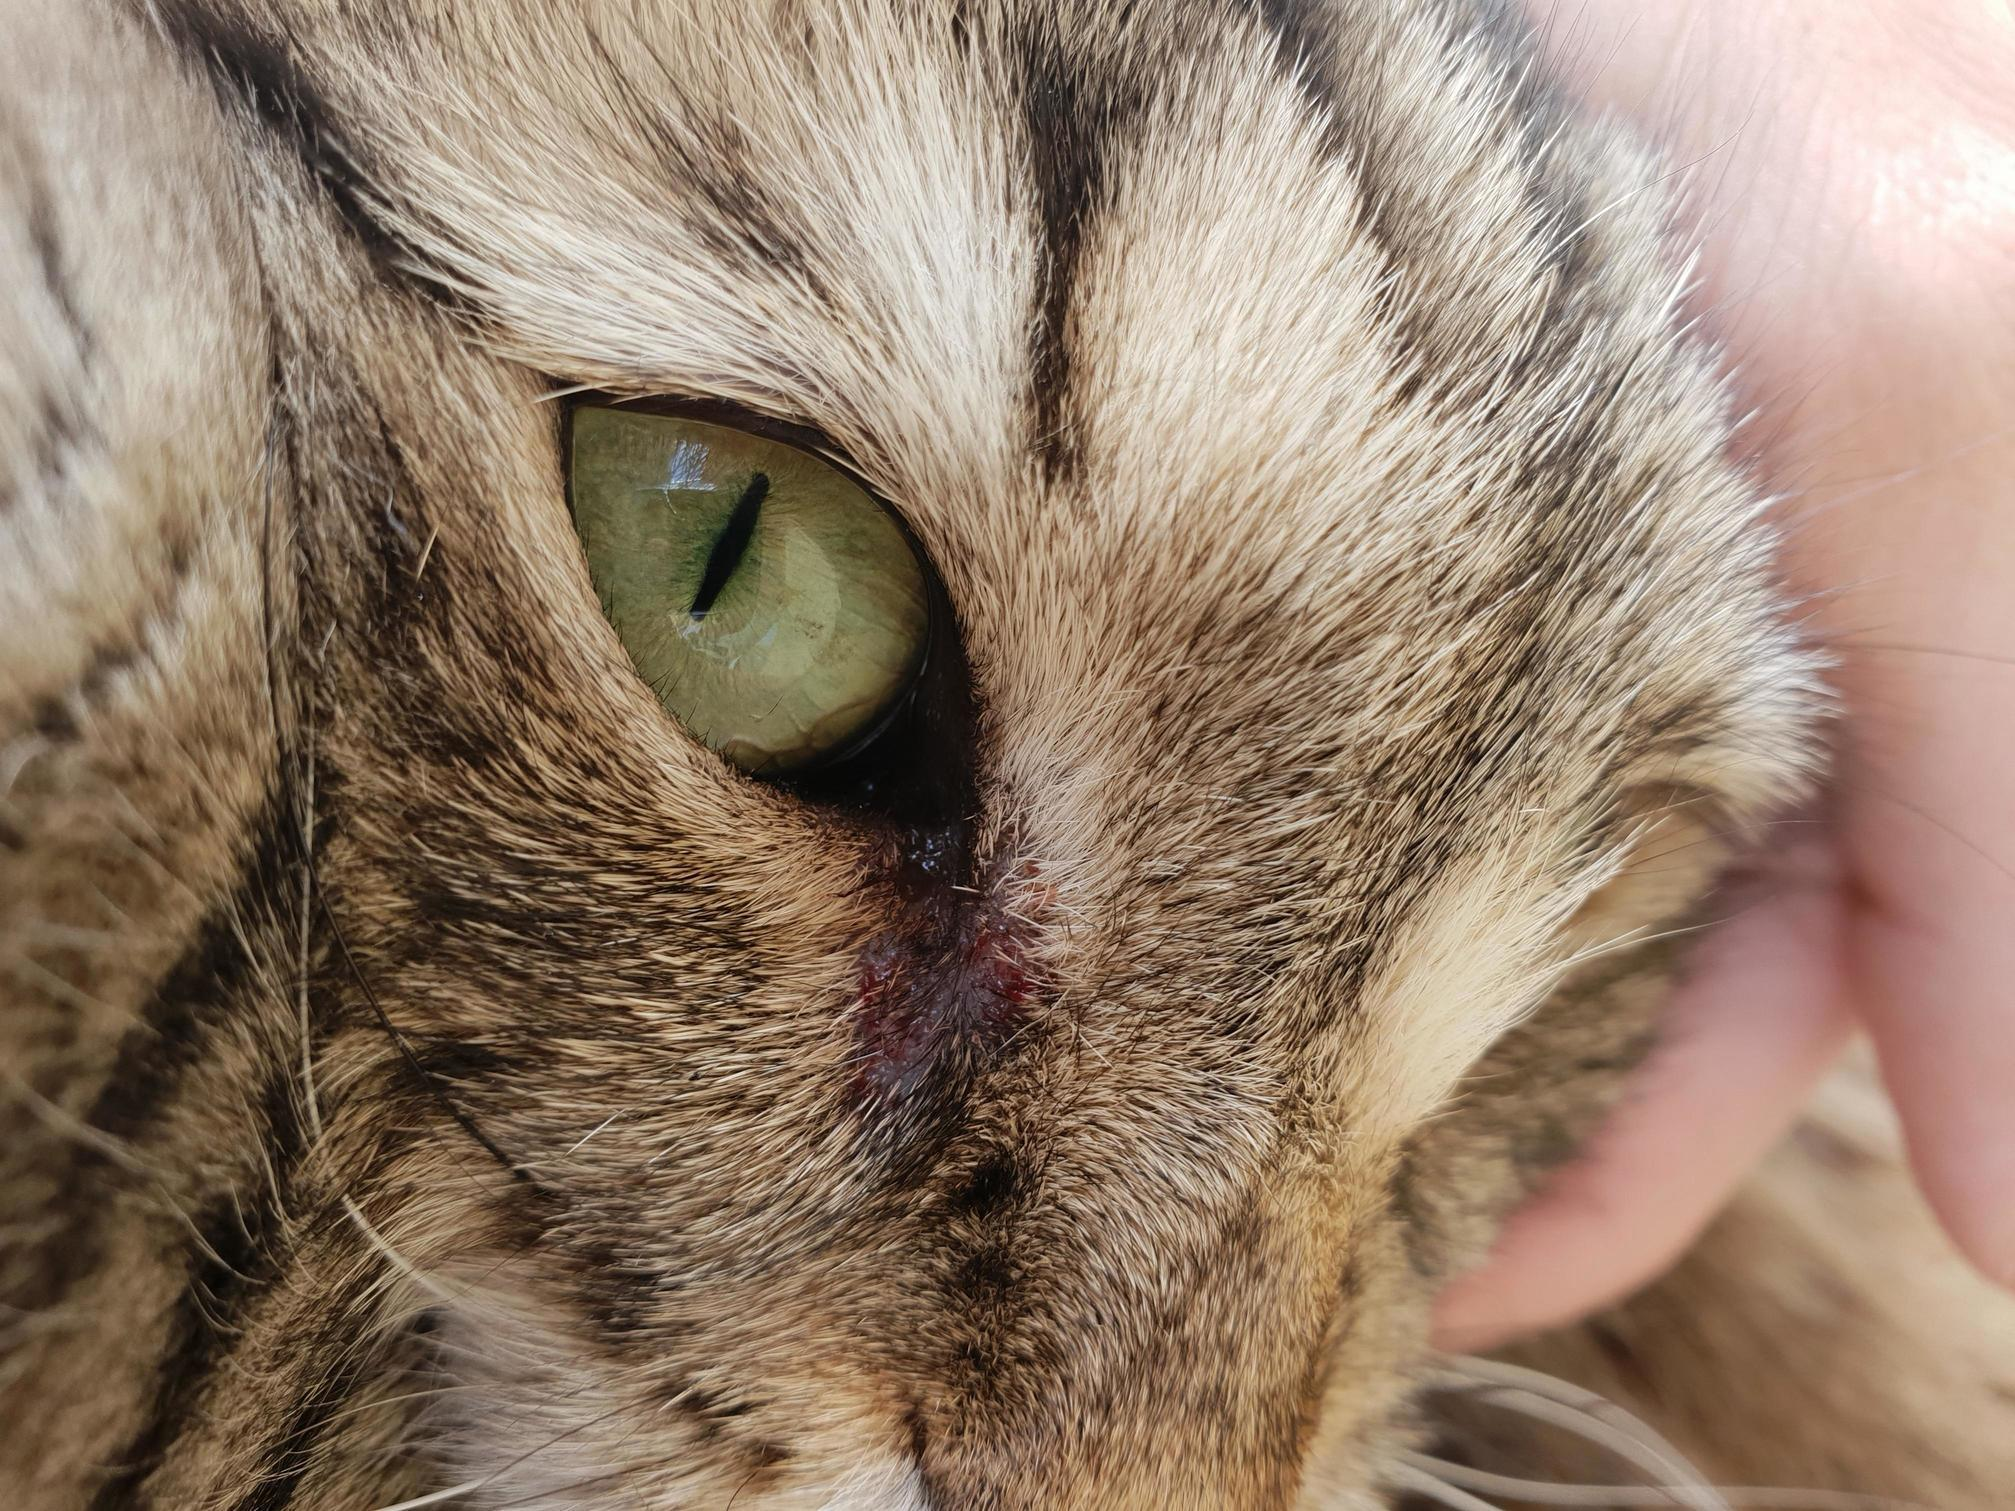 This morning, my cat struggled to open his right eye. now he has blood next to the eye. anyone knows why 